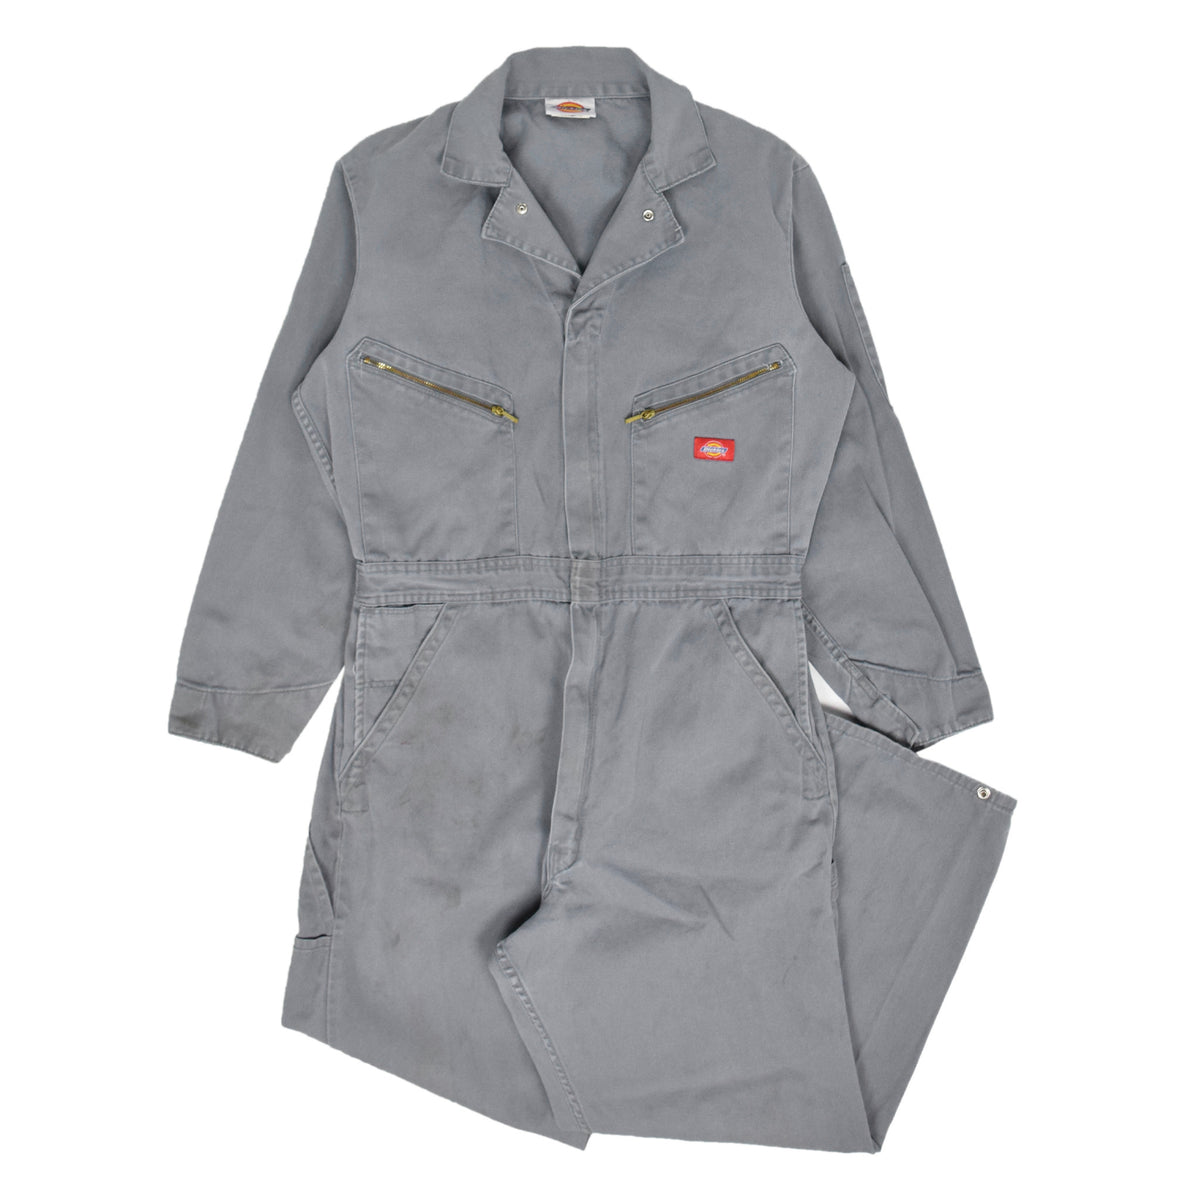 Vintage Dickies Workwear Coverall Washed Grey Cotton Boiler Suit M / L front